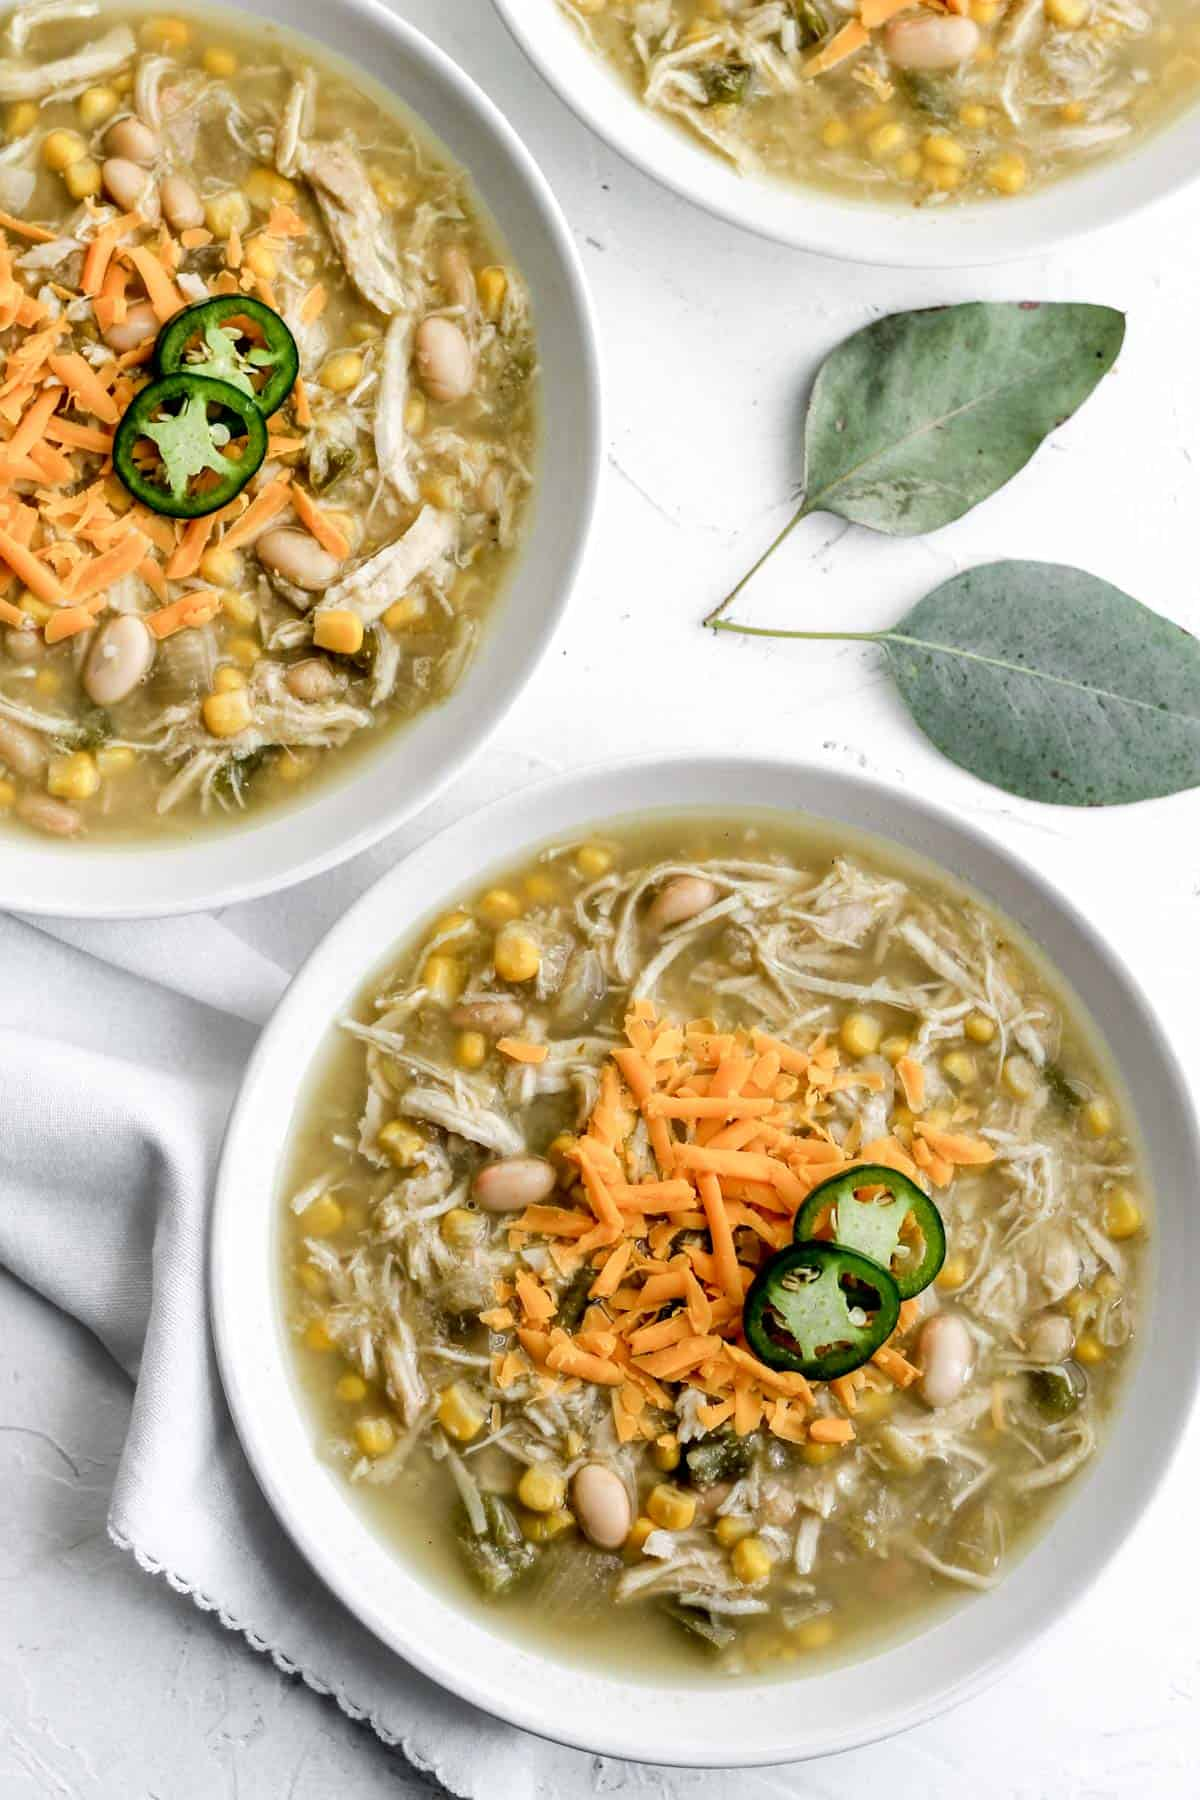 White chicken chili in 2 white bowls with a white napkin and 2 eucalyptus leaves next to them.